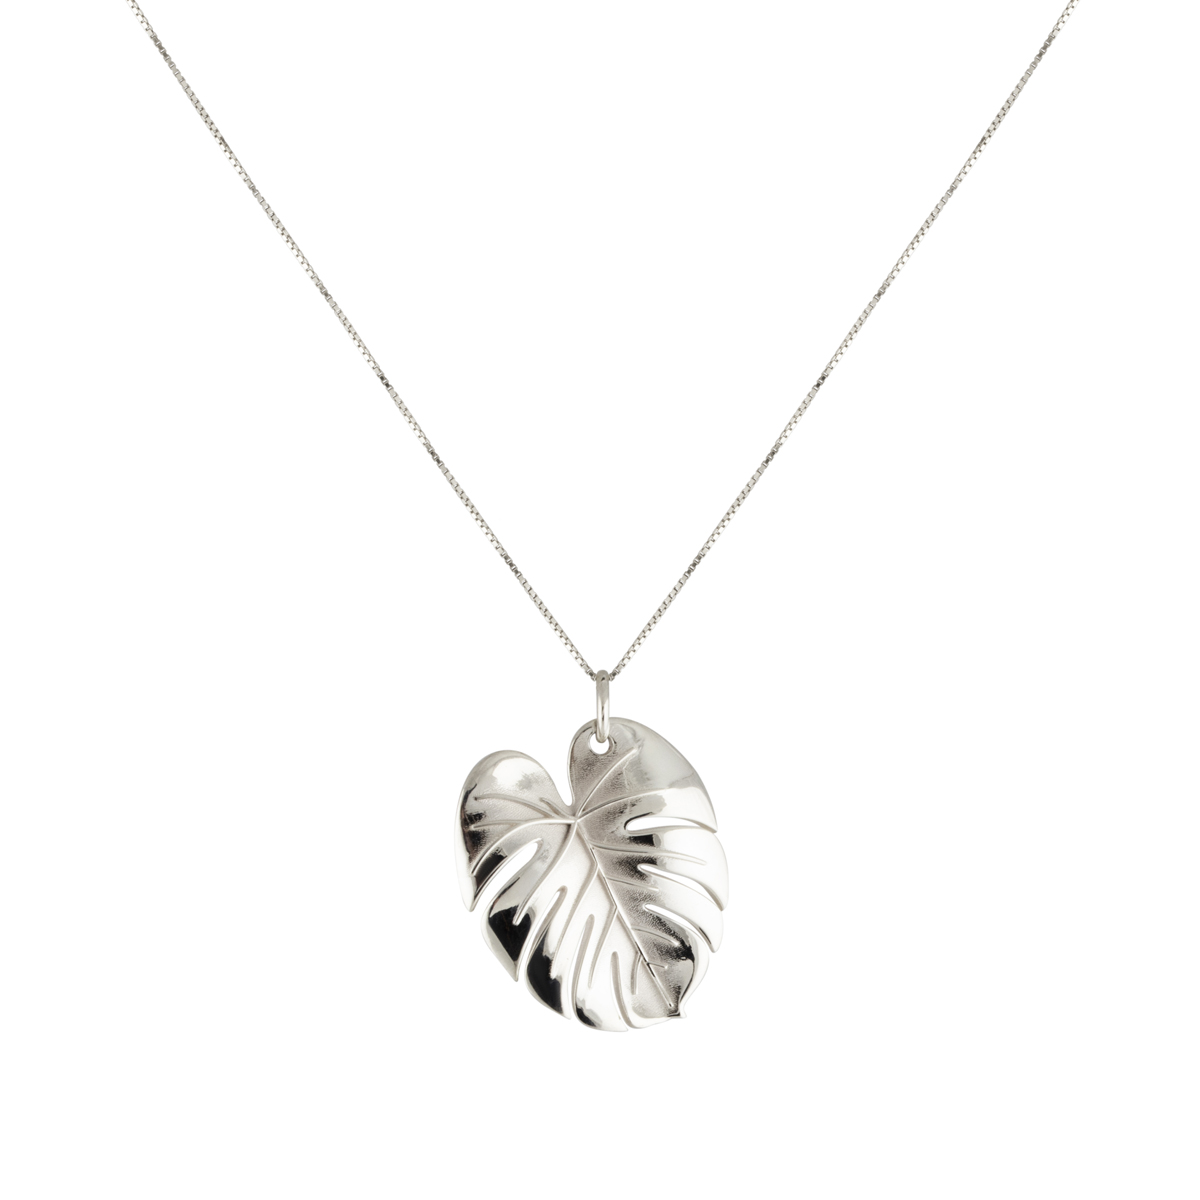 PALM LEAF NECKLACE SILVER L in the group NECKLACES at EMMA ISRAELSSON (neck099)